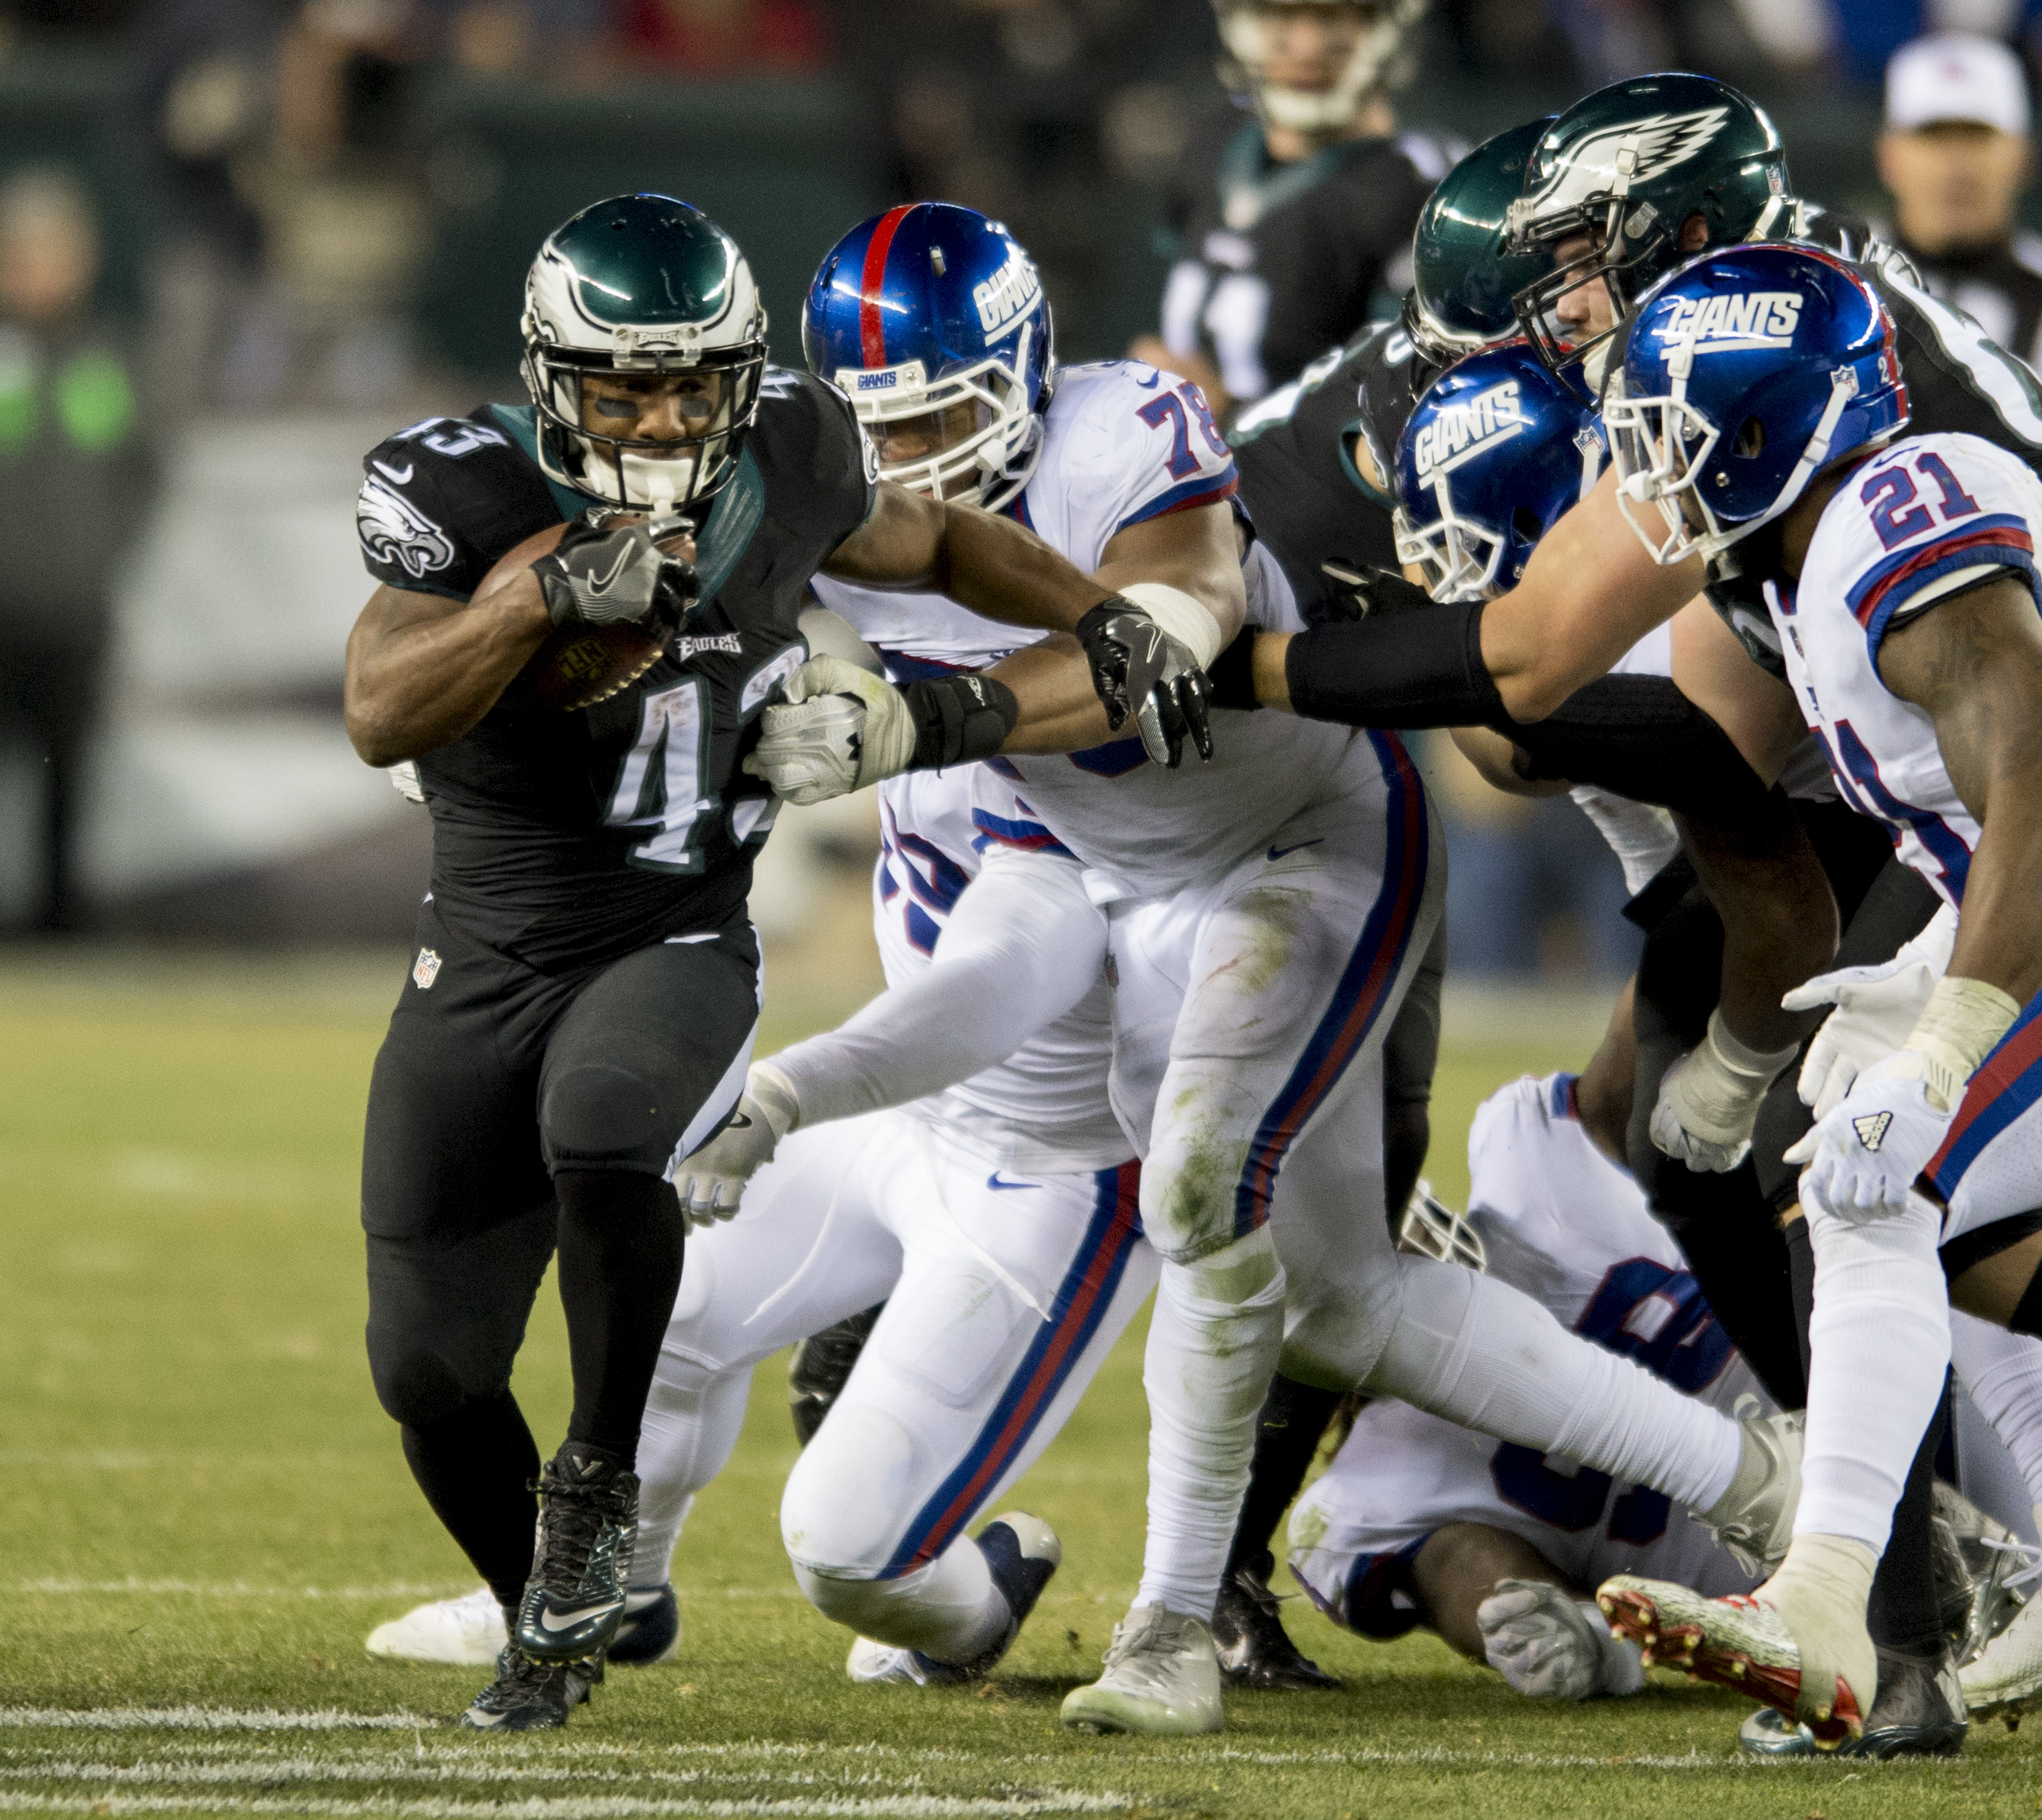 Eagles running back Darren Sproles busts through the Giants defensive line in the 4th quarter of the Eagles 24-19 victory at Lincoln Financial Field December 22, 2016. Sproles carried 7 times for 40 yards in the win. CLEM MURRAY / Staff Photographer